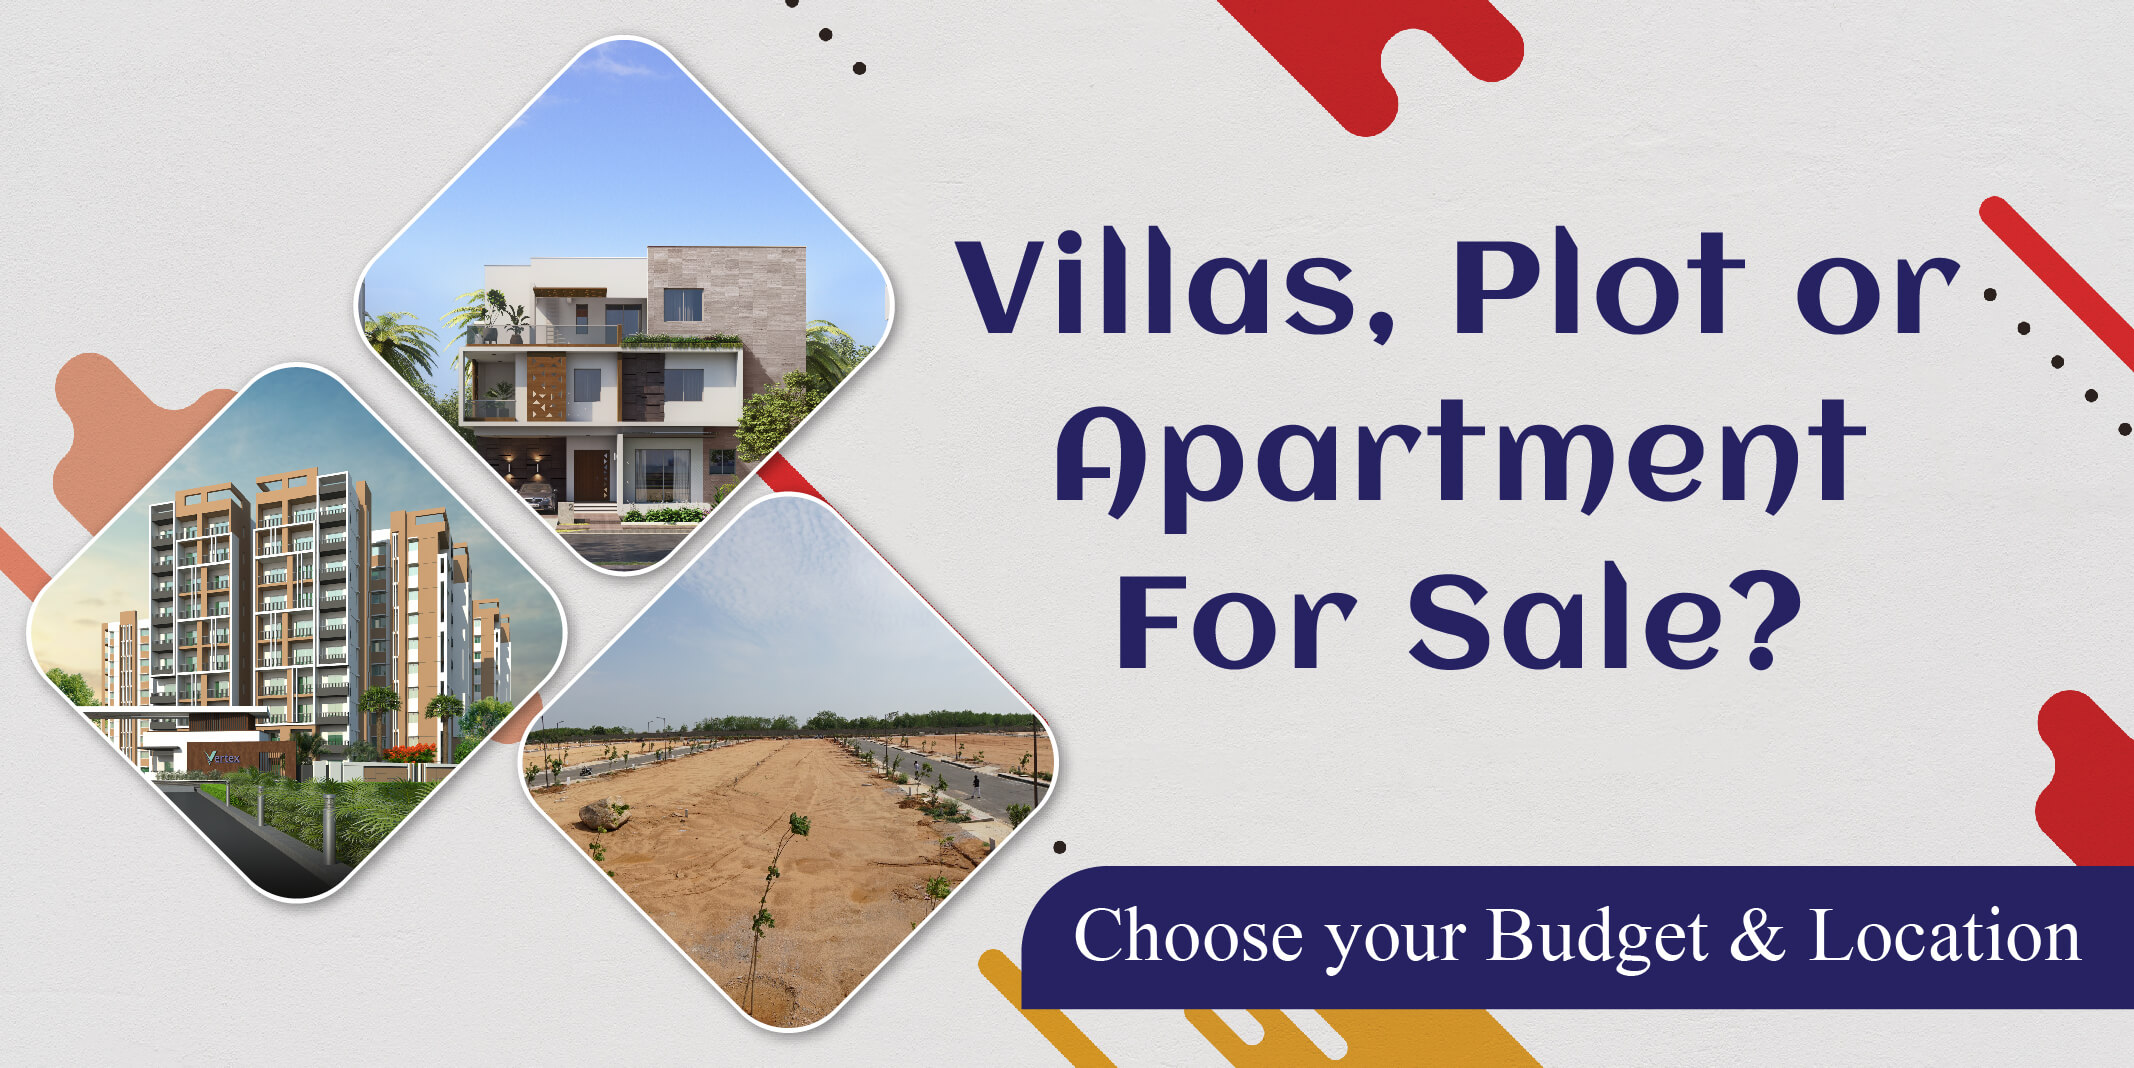 Villa, Plot or Apartment for Sale Choose your Budget & Location